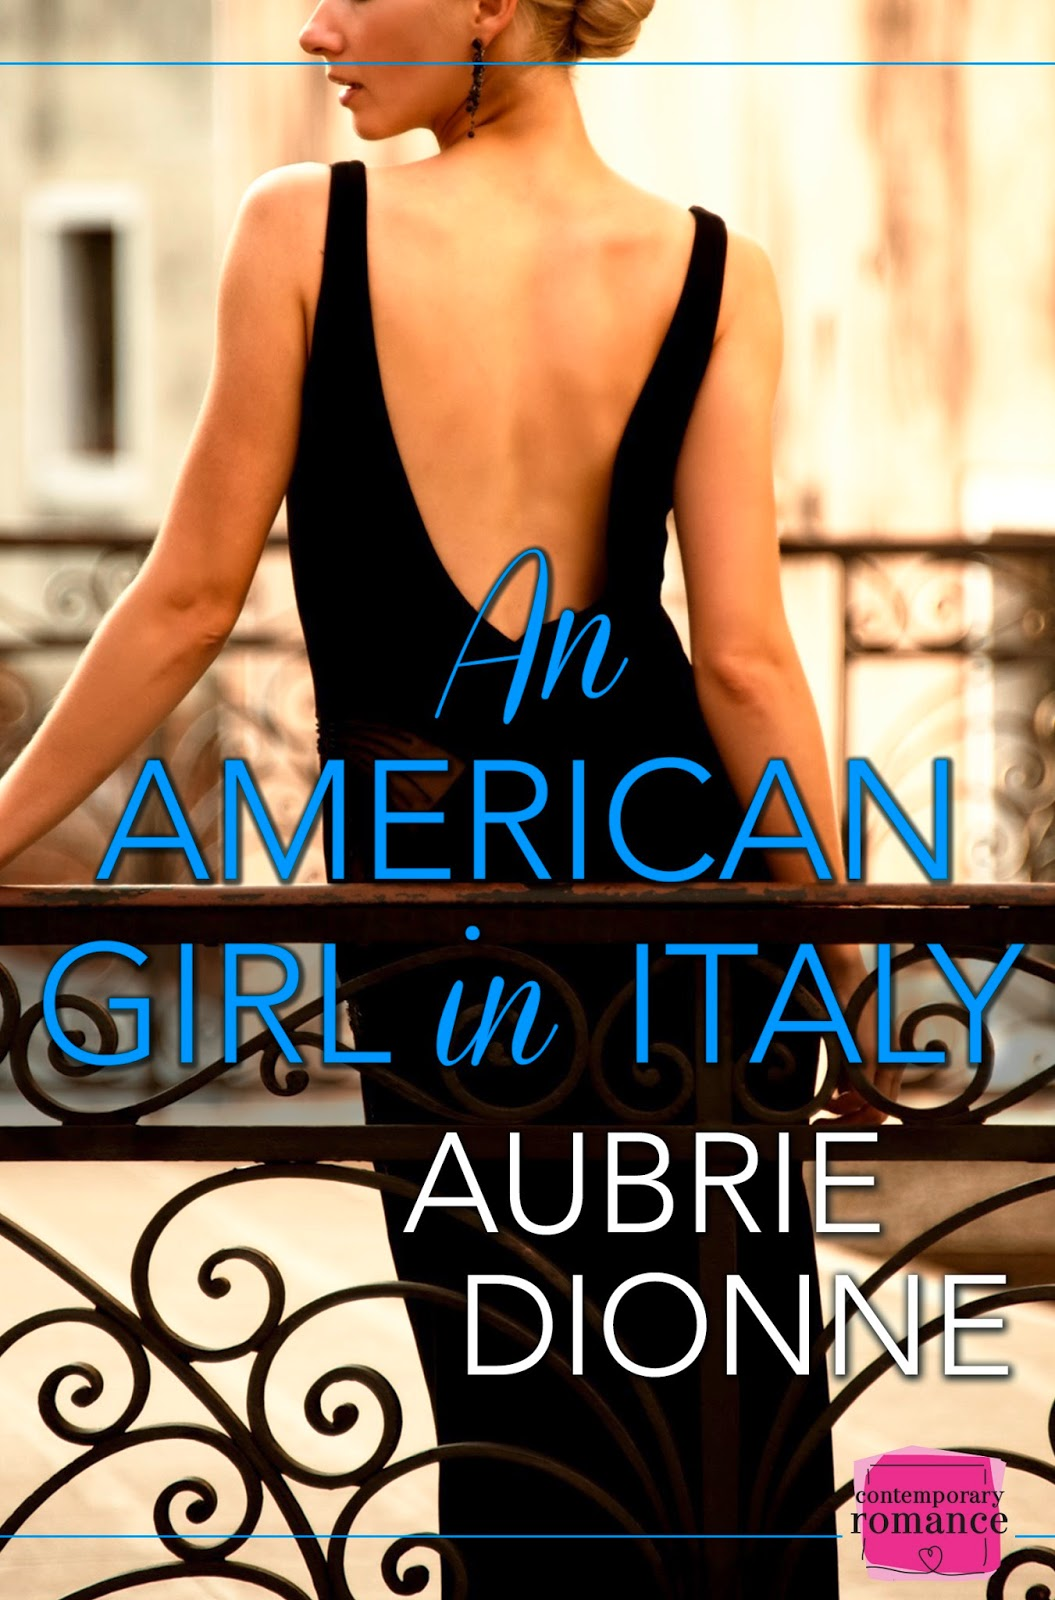 An American Girl in Italy {Aubrie Dionne} | #bookreview #booktour #cbbpromotions